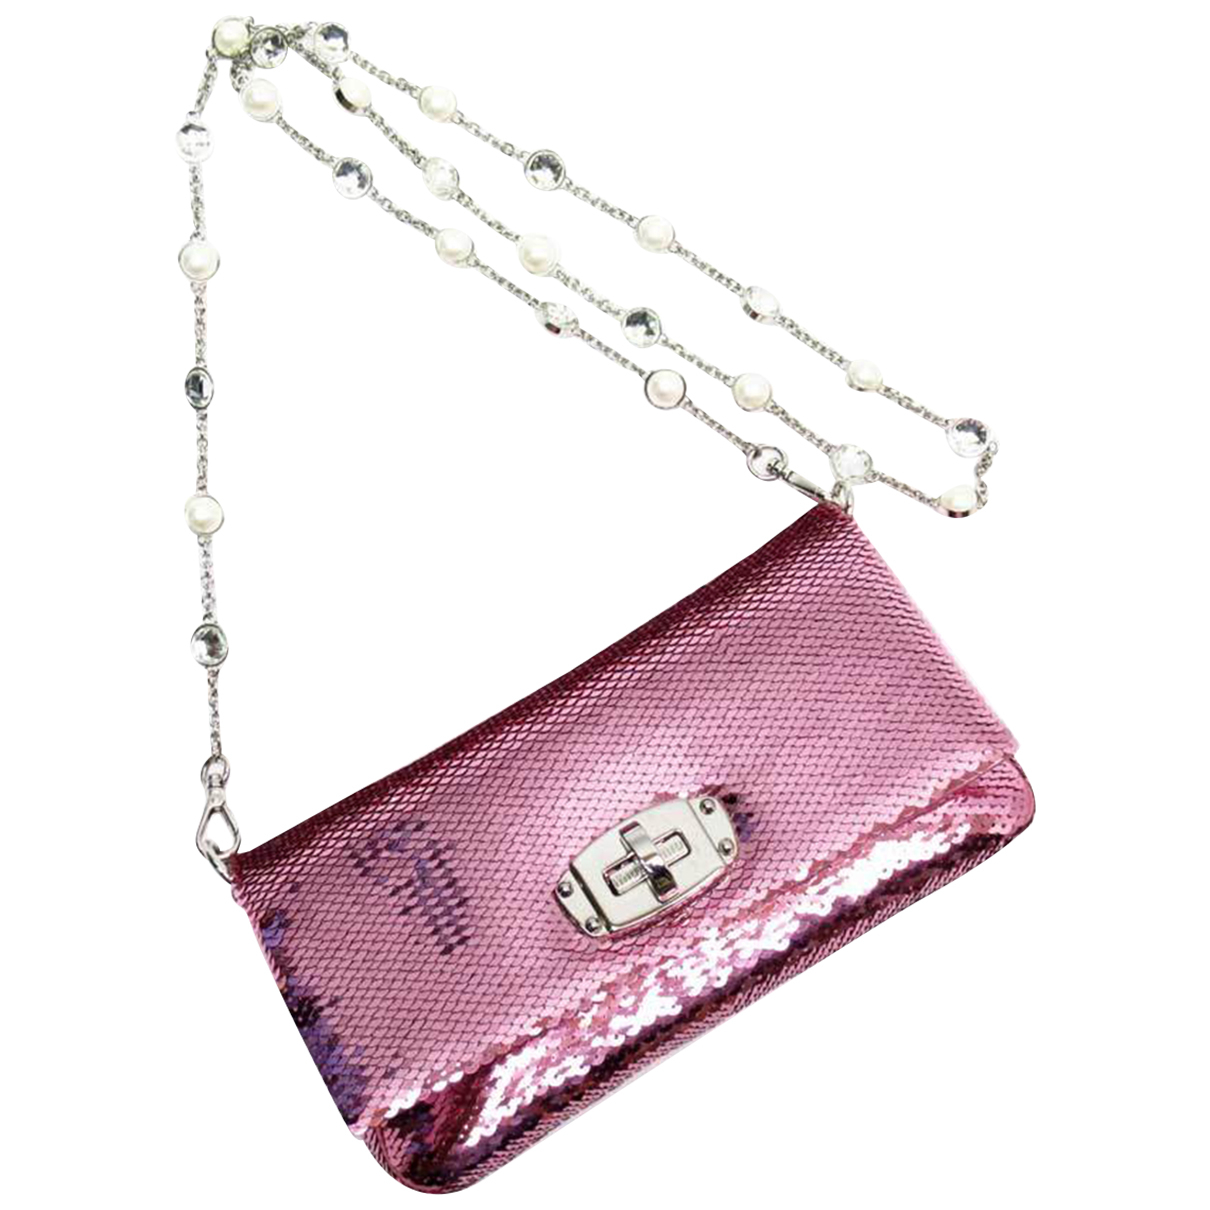 Miu Miu \N Clutch in  Rosa Mit Pailletten